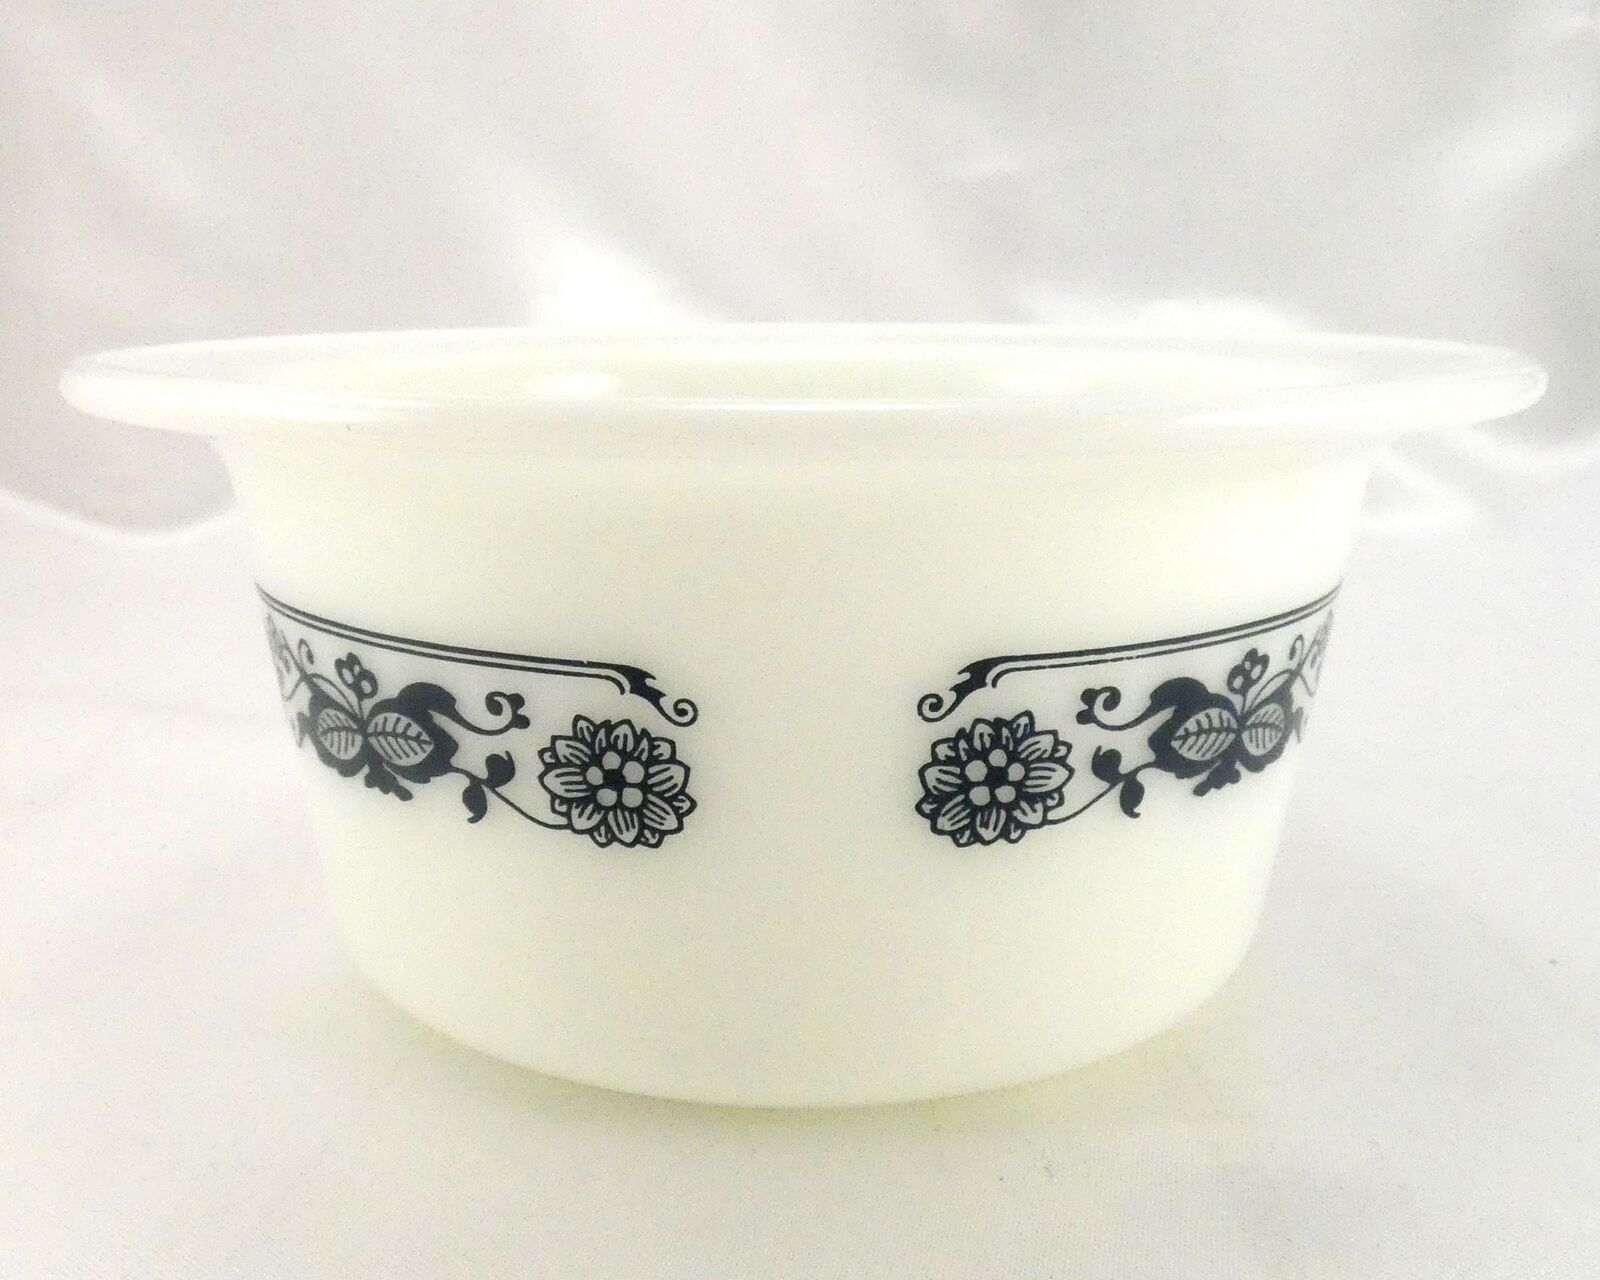 Pyrex 75 Old Town Dish Blue Wide Extended Rim Crock Style Bowl ~ Made in the USA image 6